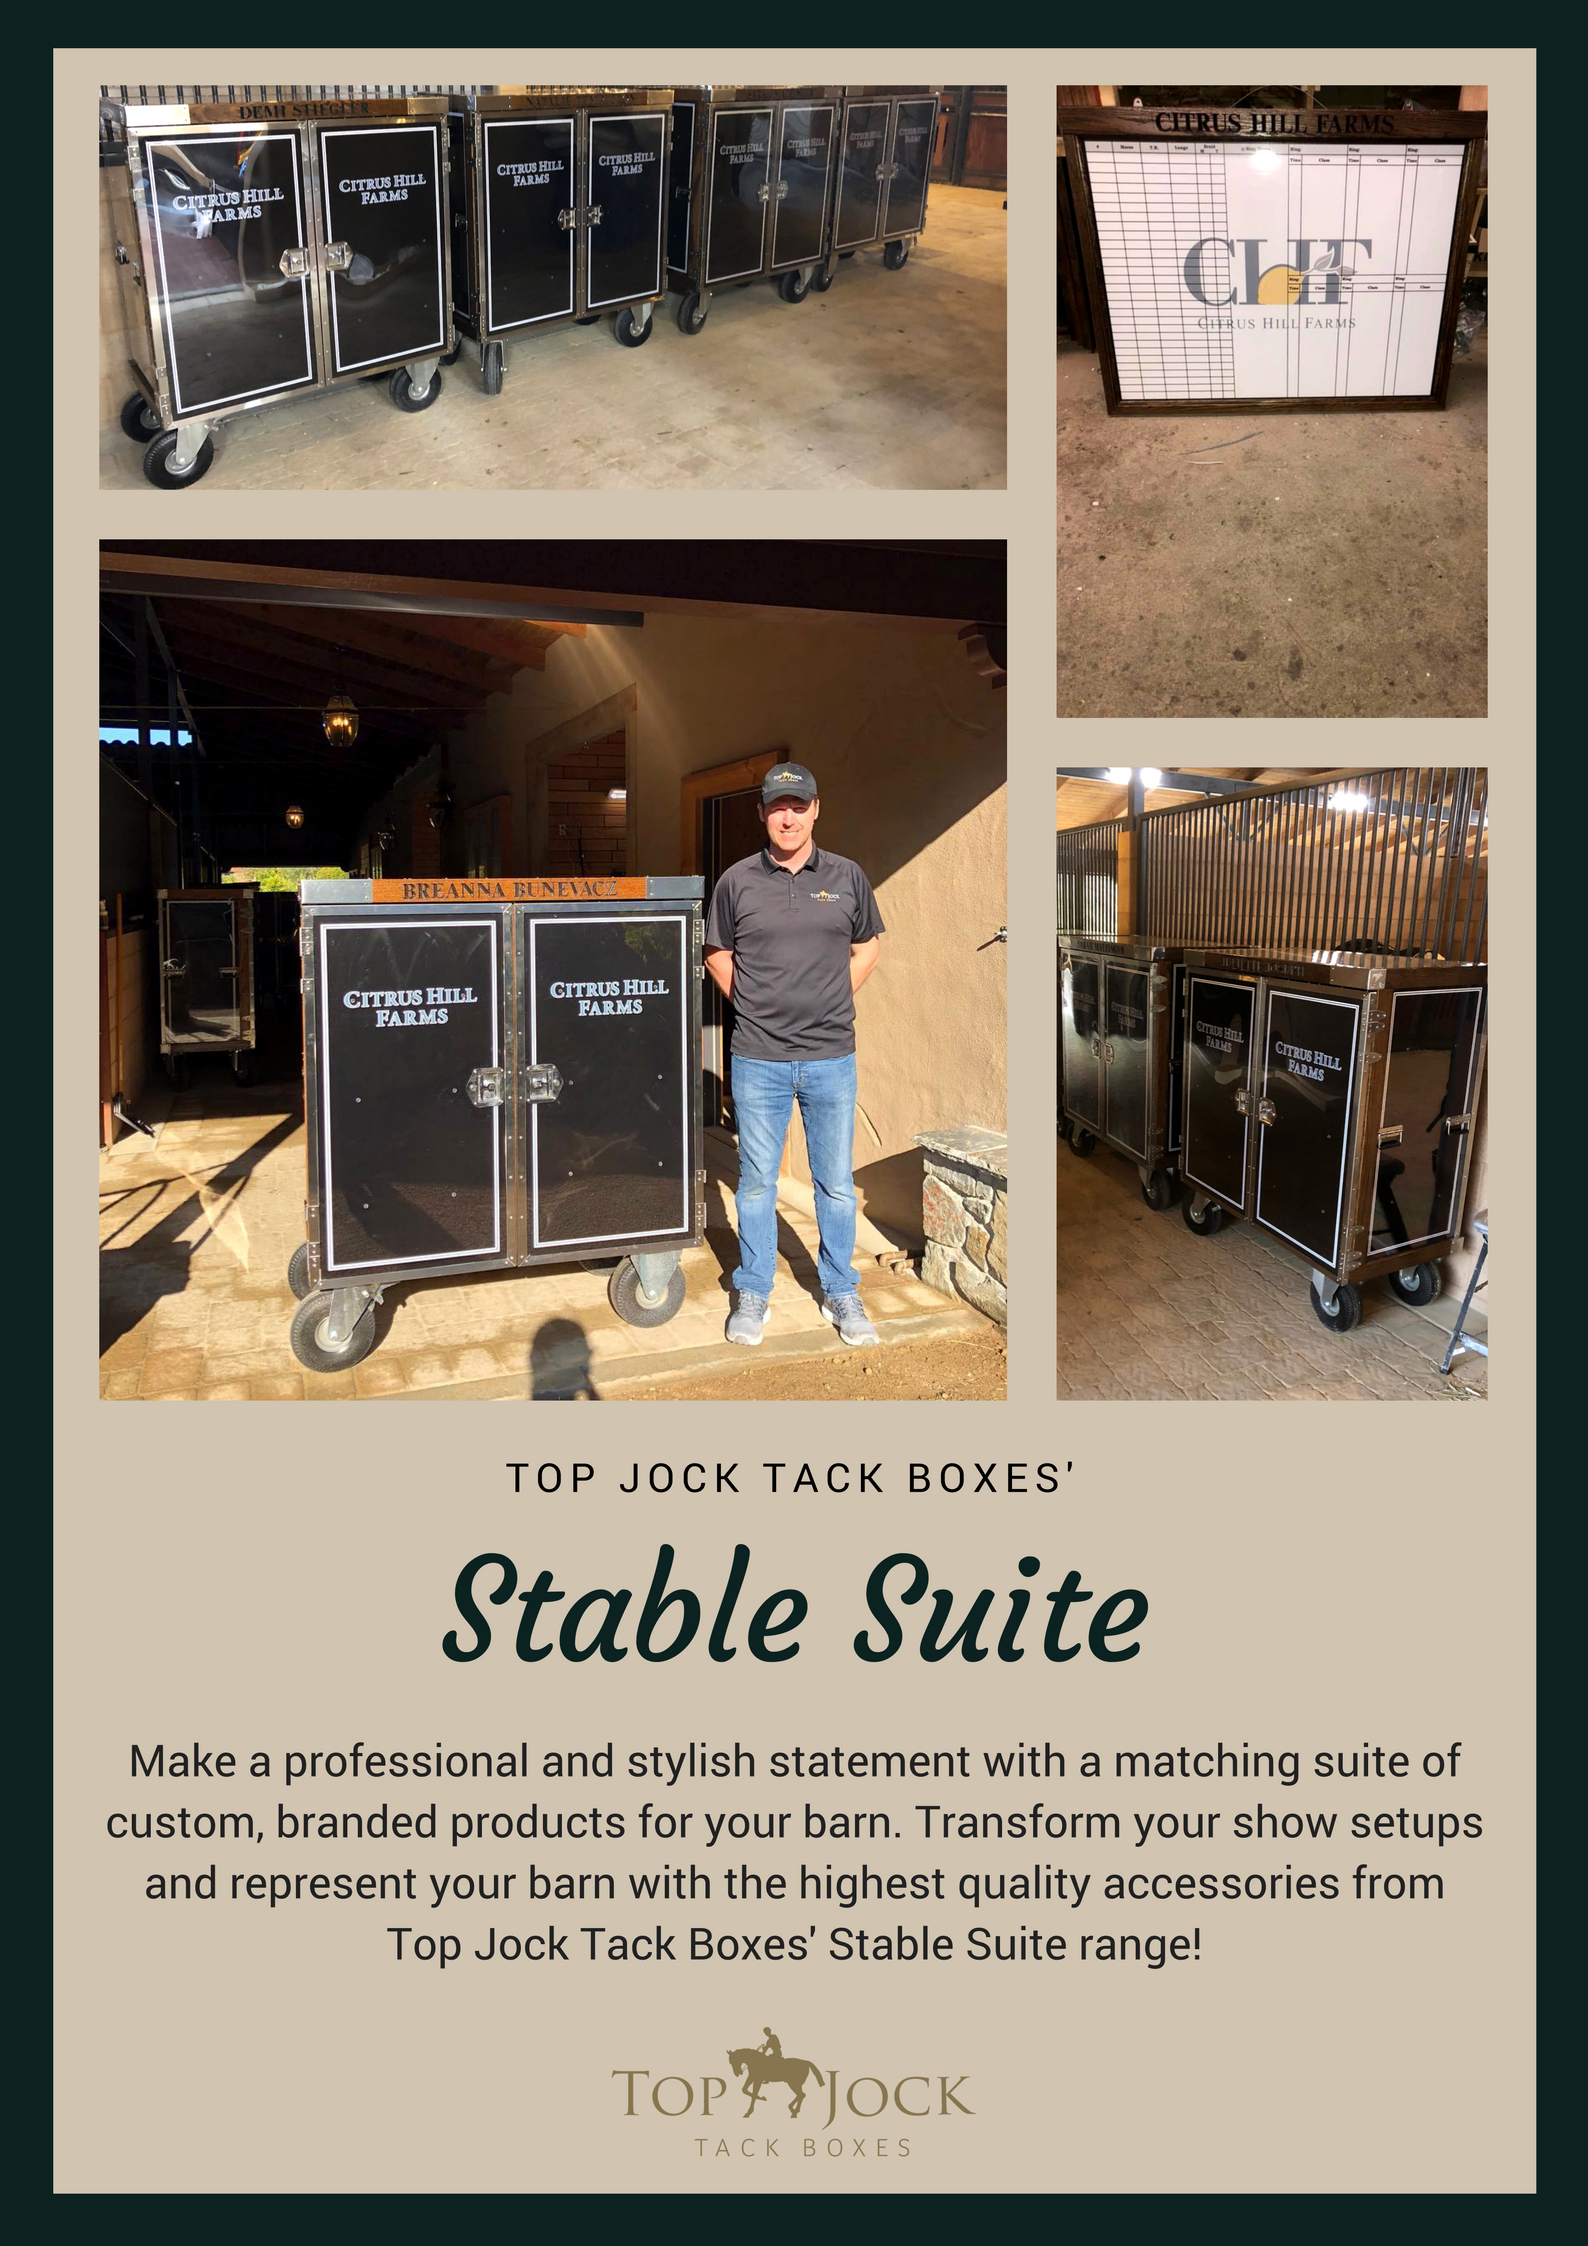 Step up Your Show Setup with Top Jock Tack Boxes' Stable Suite Range